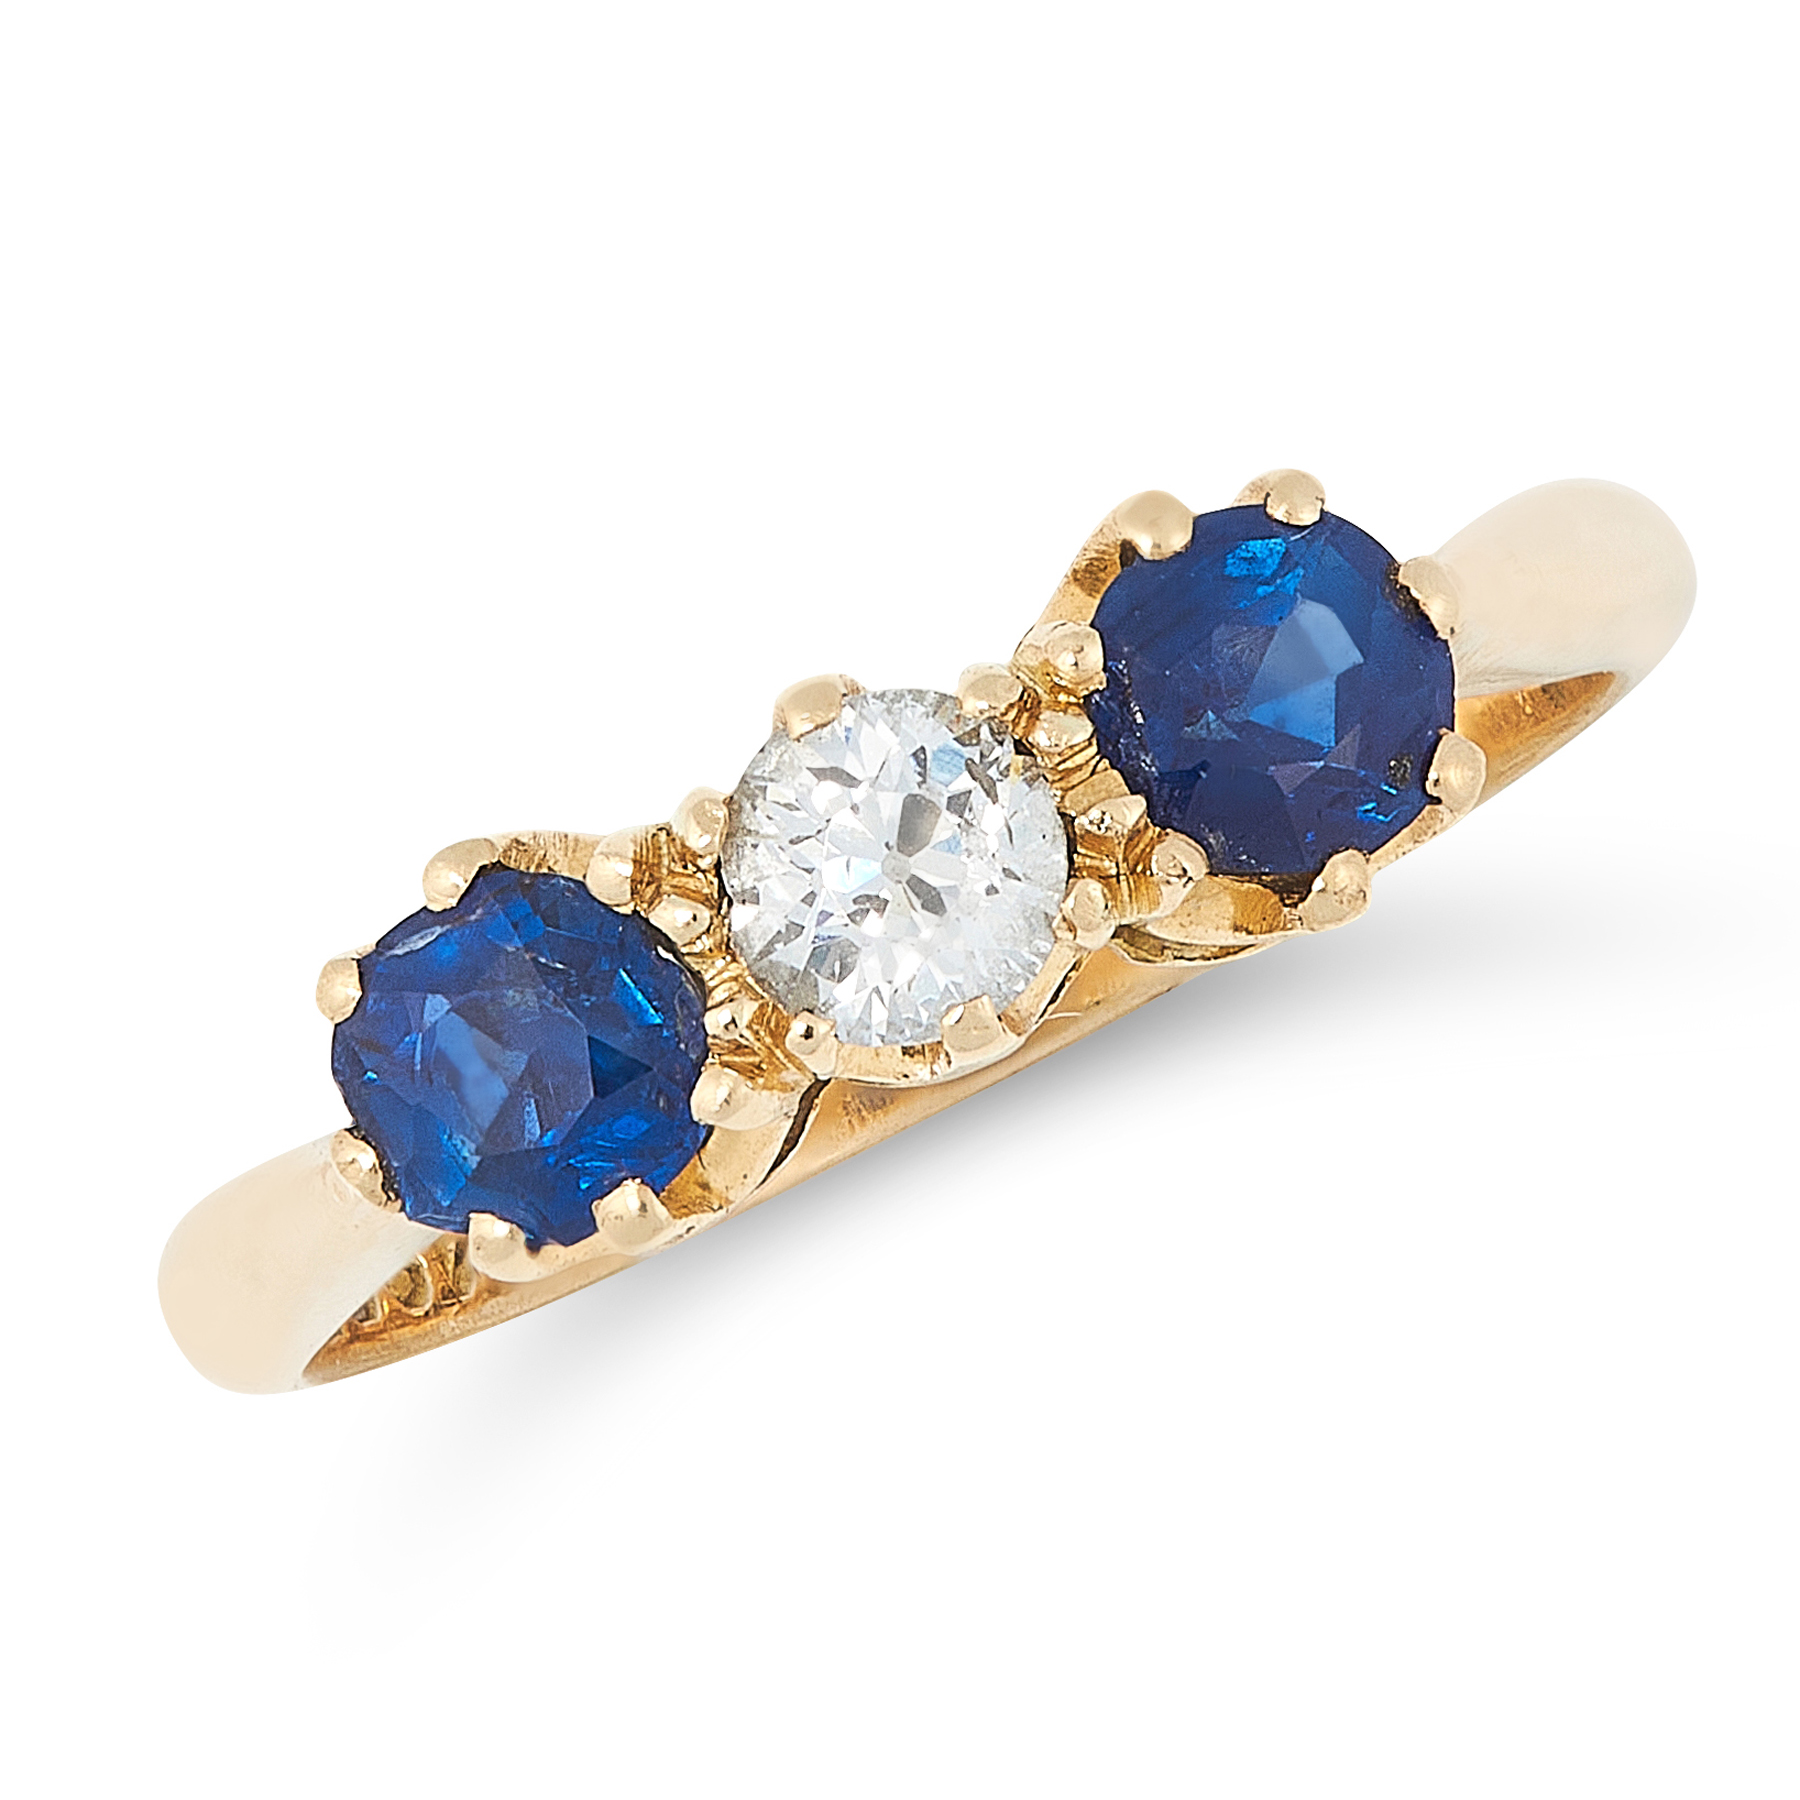 A SAPPHIRE AND DIAMOND DRESS RING in 18ct yellow gold, set with an old cut diamond between two round